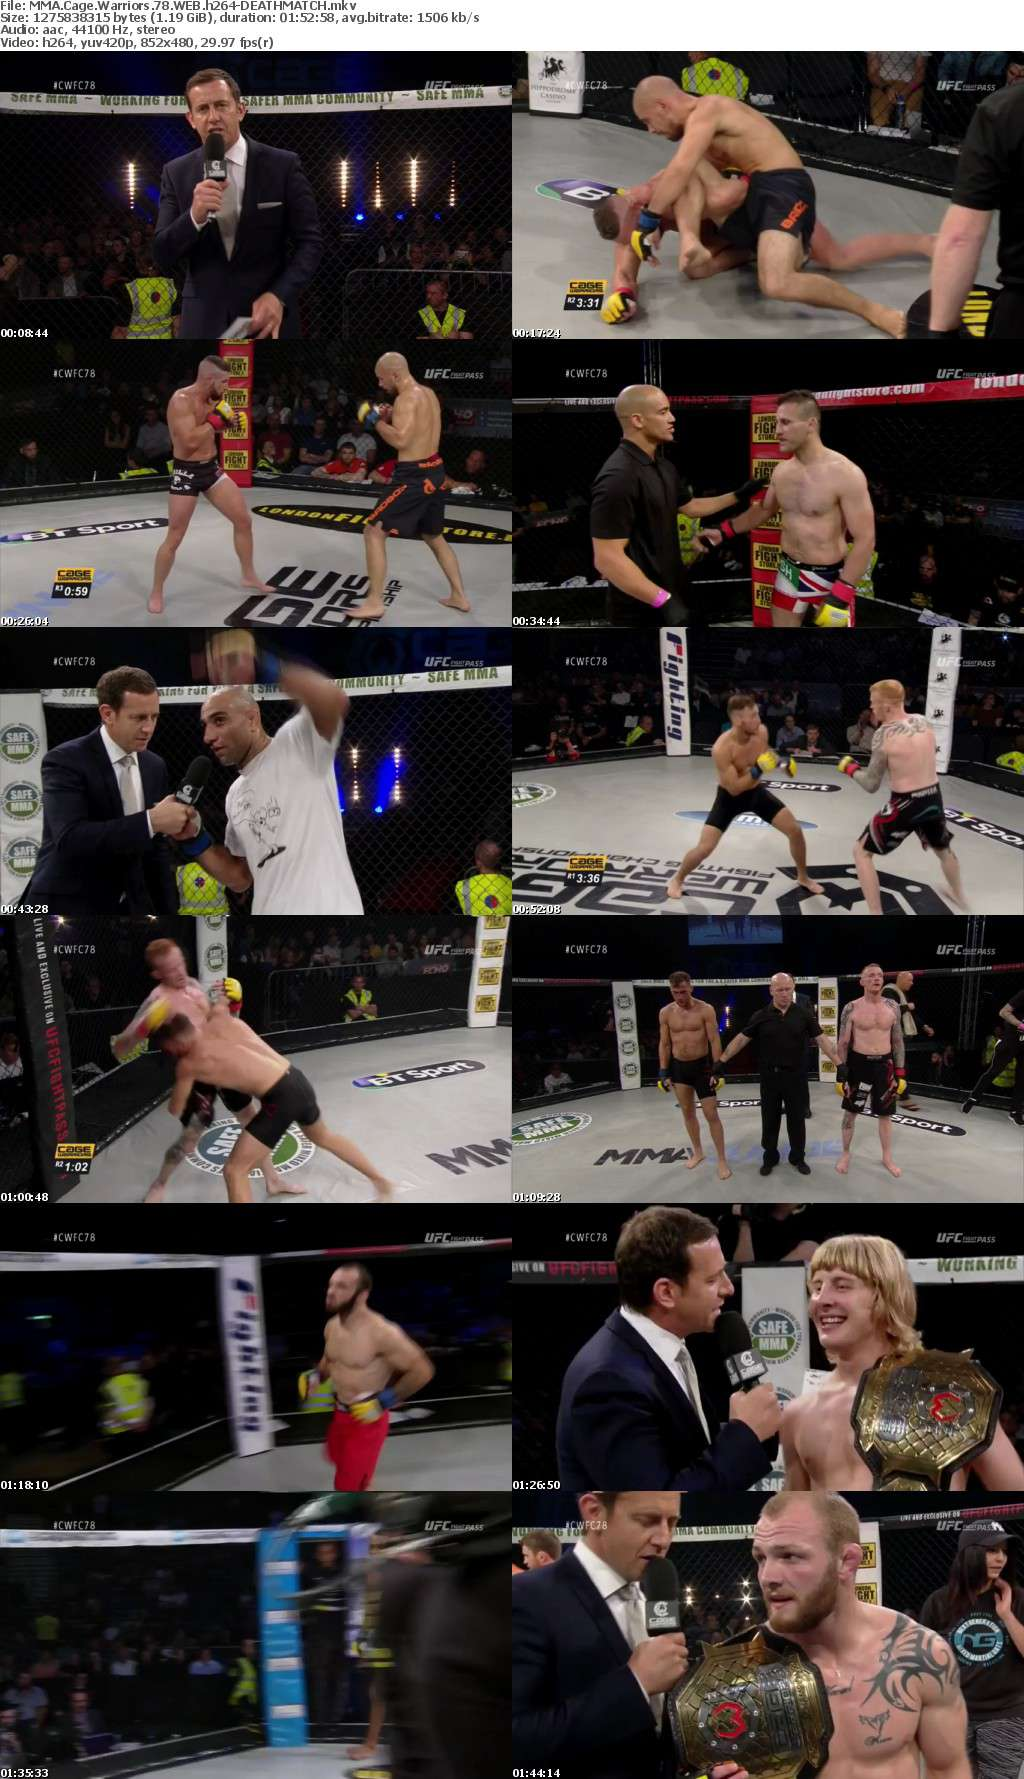 MMA Cage Warriors 78 WEB h264-DEATHMATCH